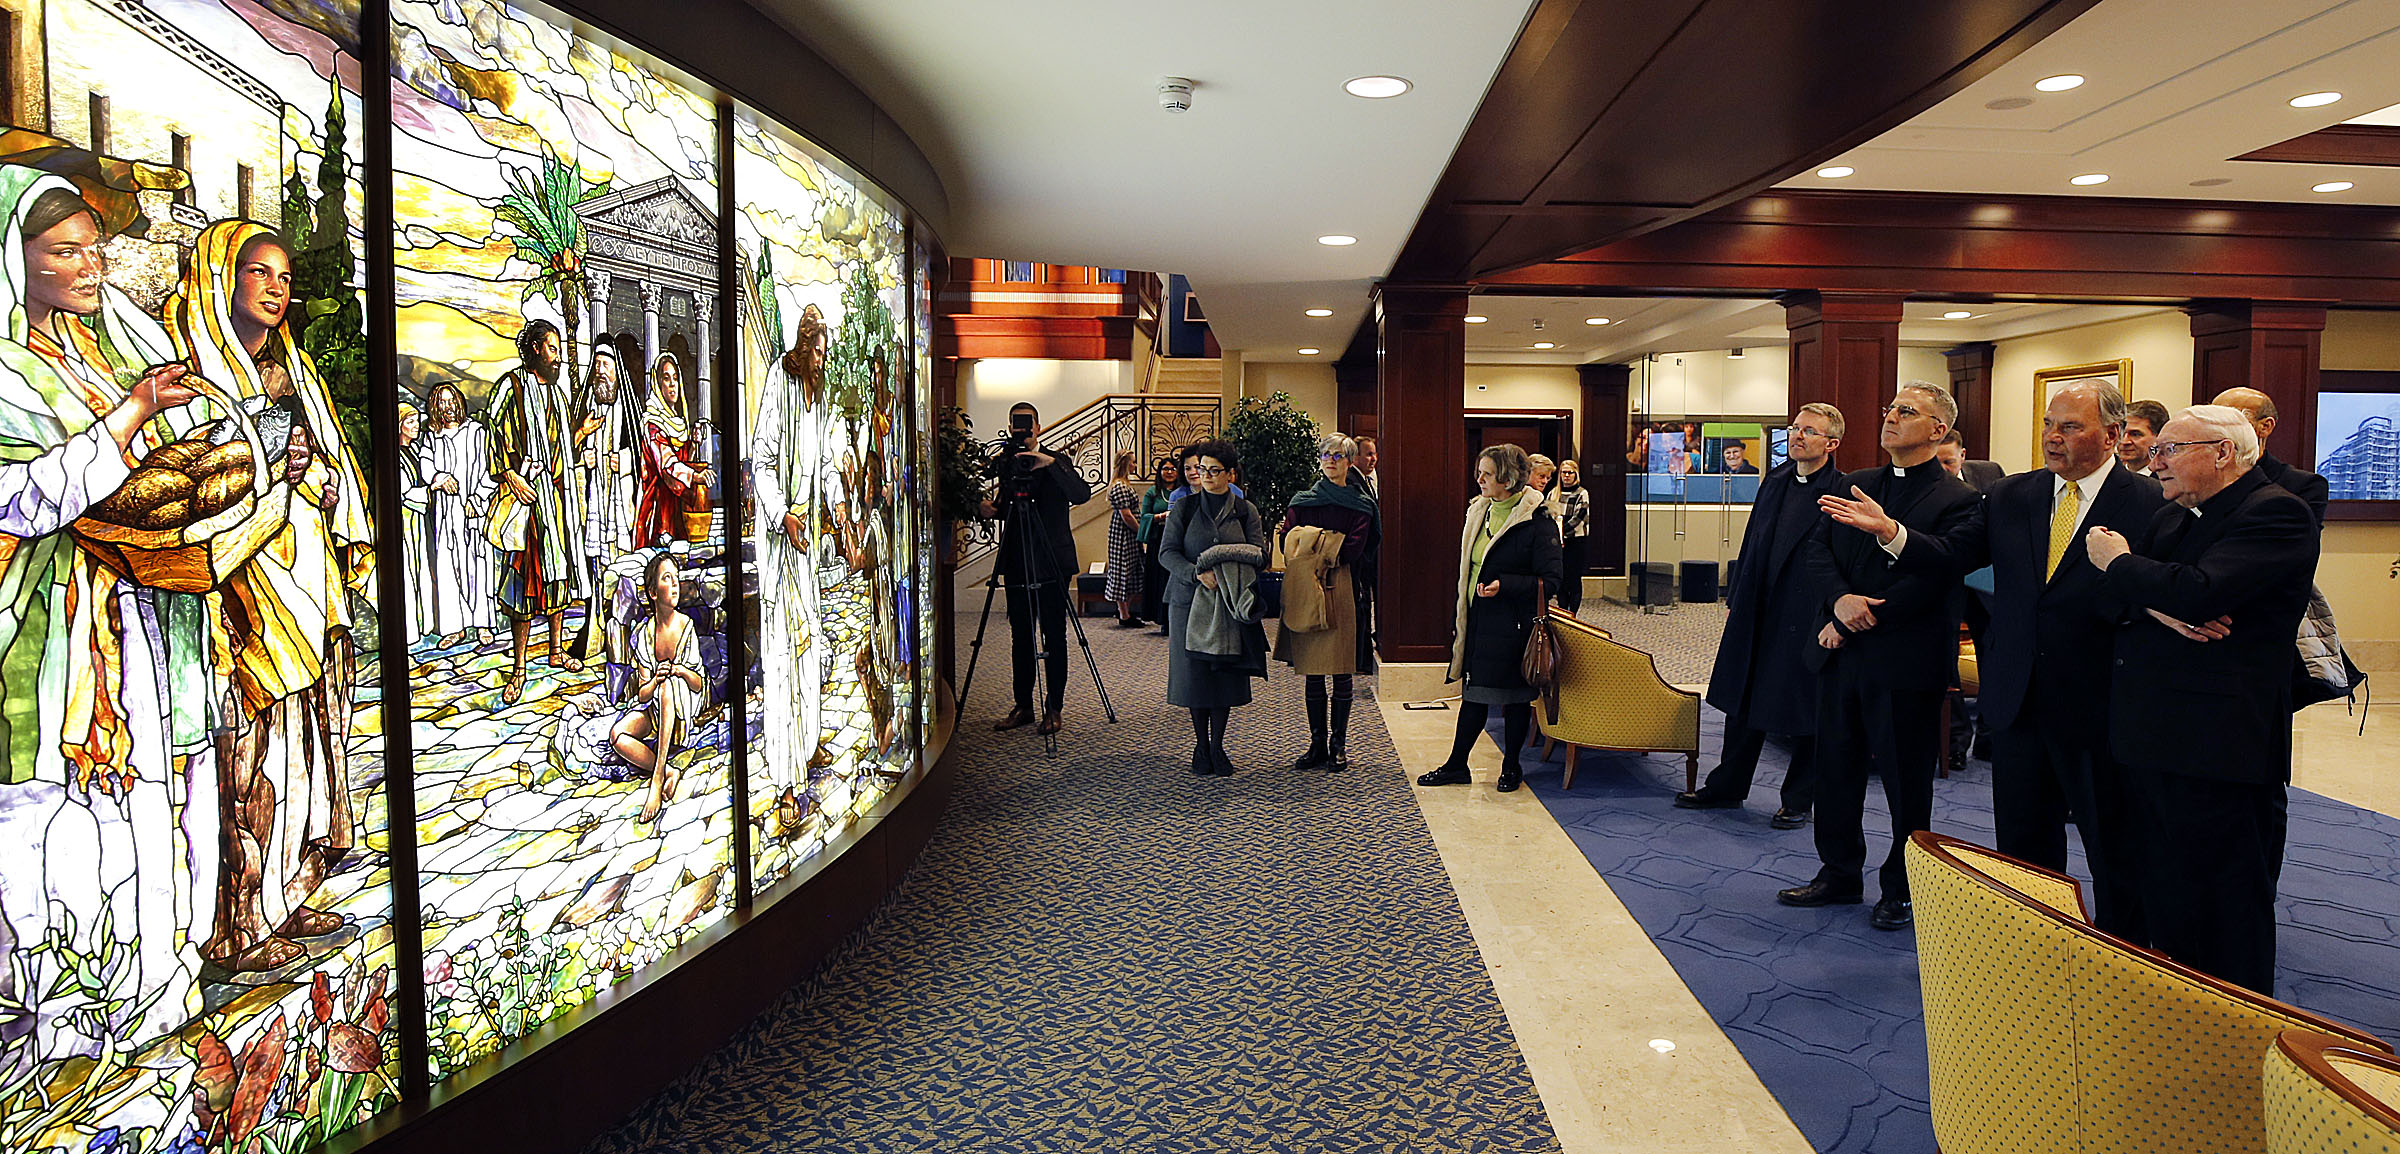 Elder Ronald A. Rasband, second from right, of The Quorum of the Twelve Apostles, talks with Brian Farrell, right, Secretary of the Pontifical Council for Promoting Christian Unity, as they view stained glass in the Rome Italy Temple Visitors' Center on Tuesday, Jan. 15, 2019.